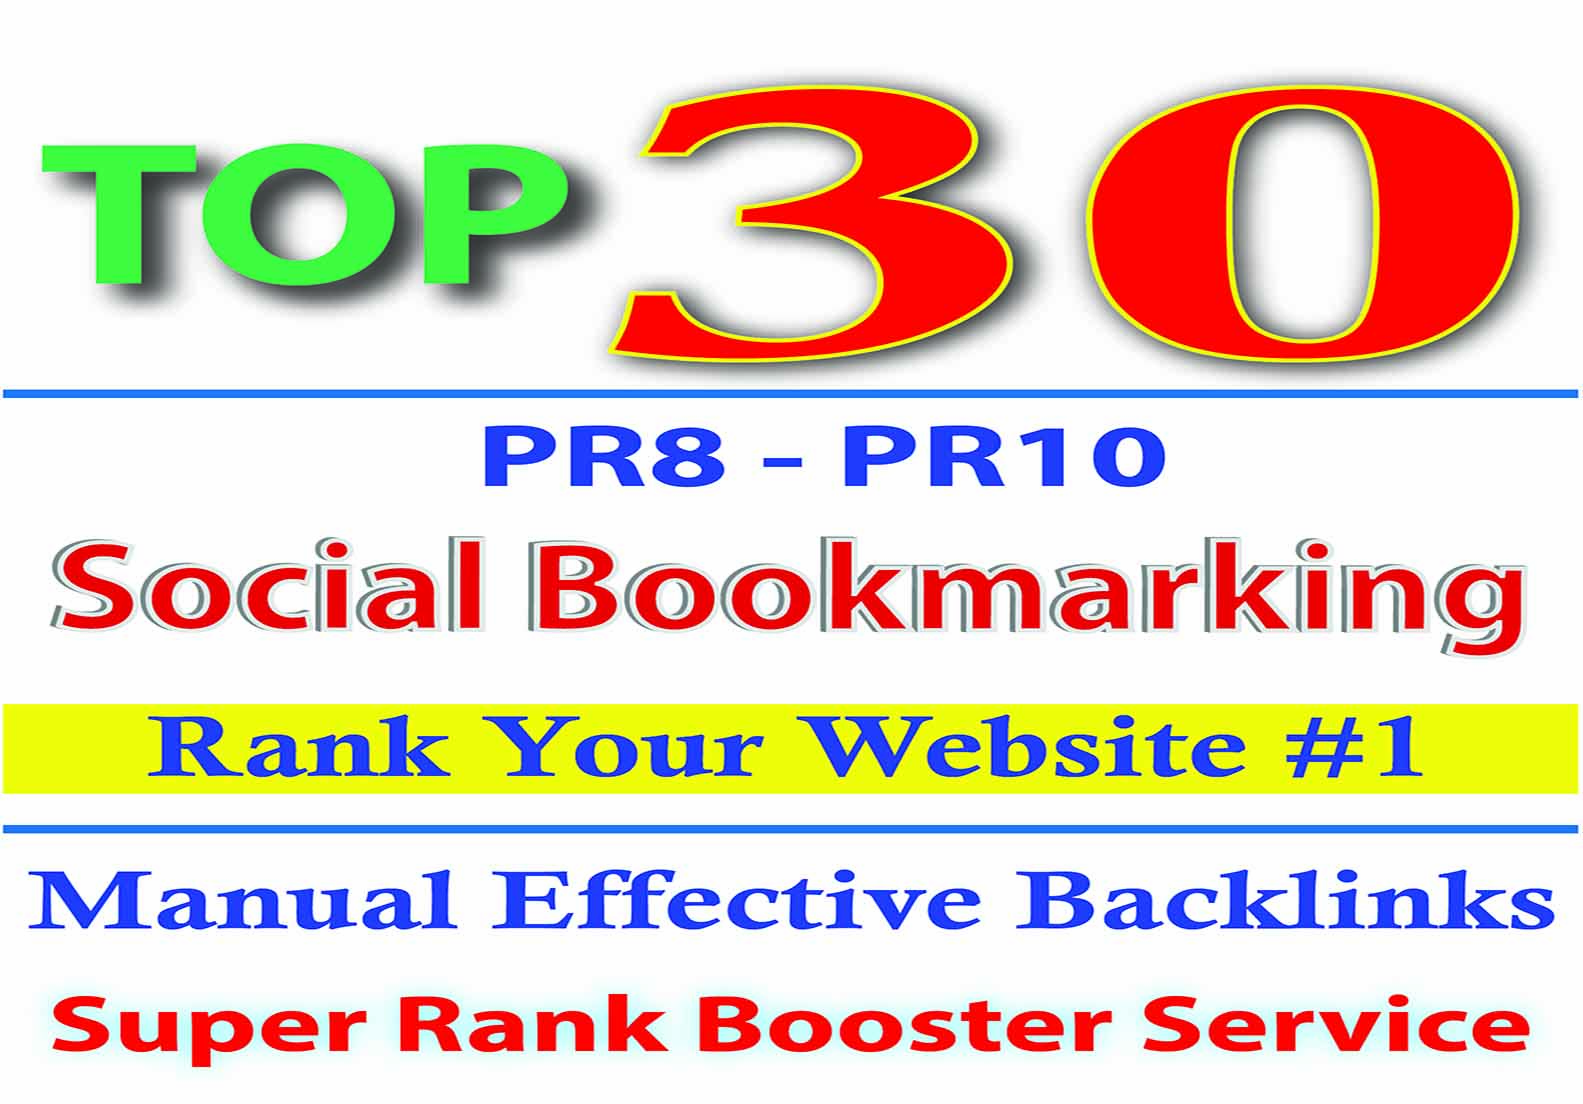 Manually Bookmark Your website in 30 Top rated social Bookmarking websites